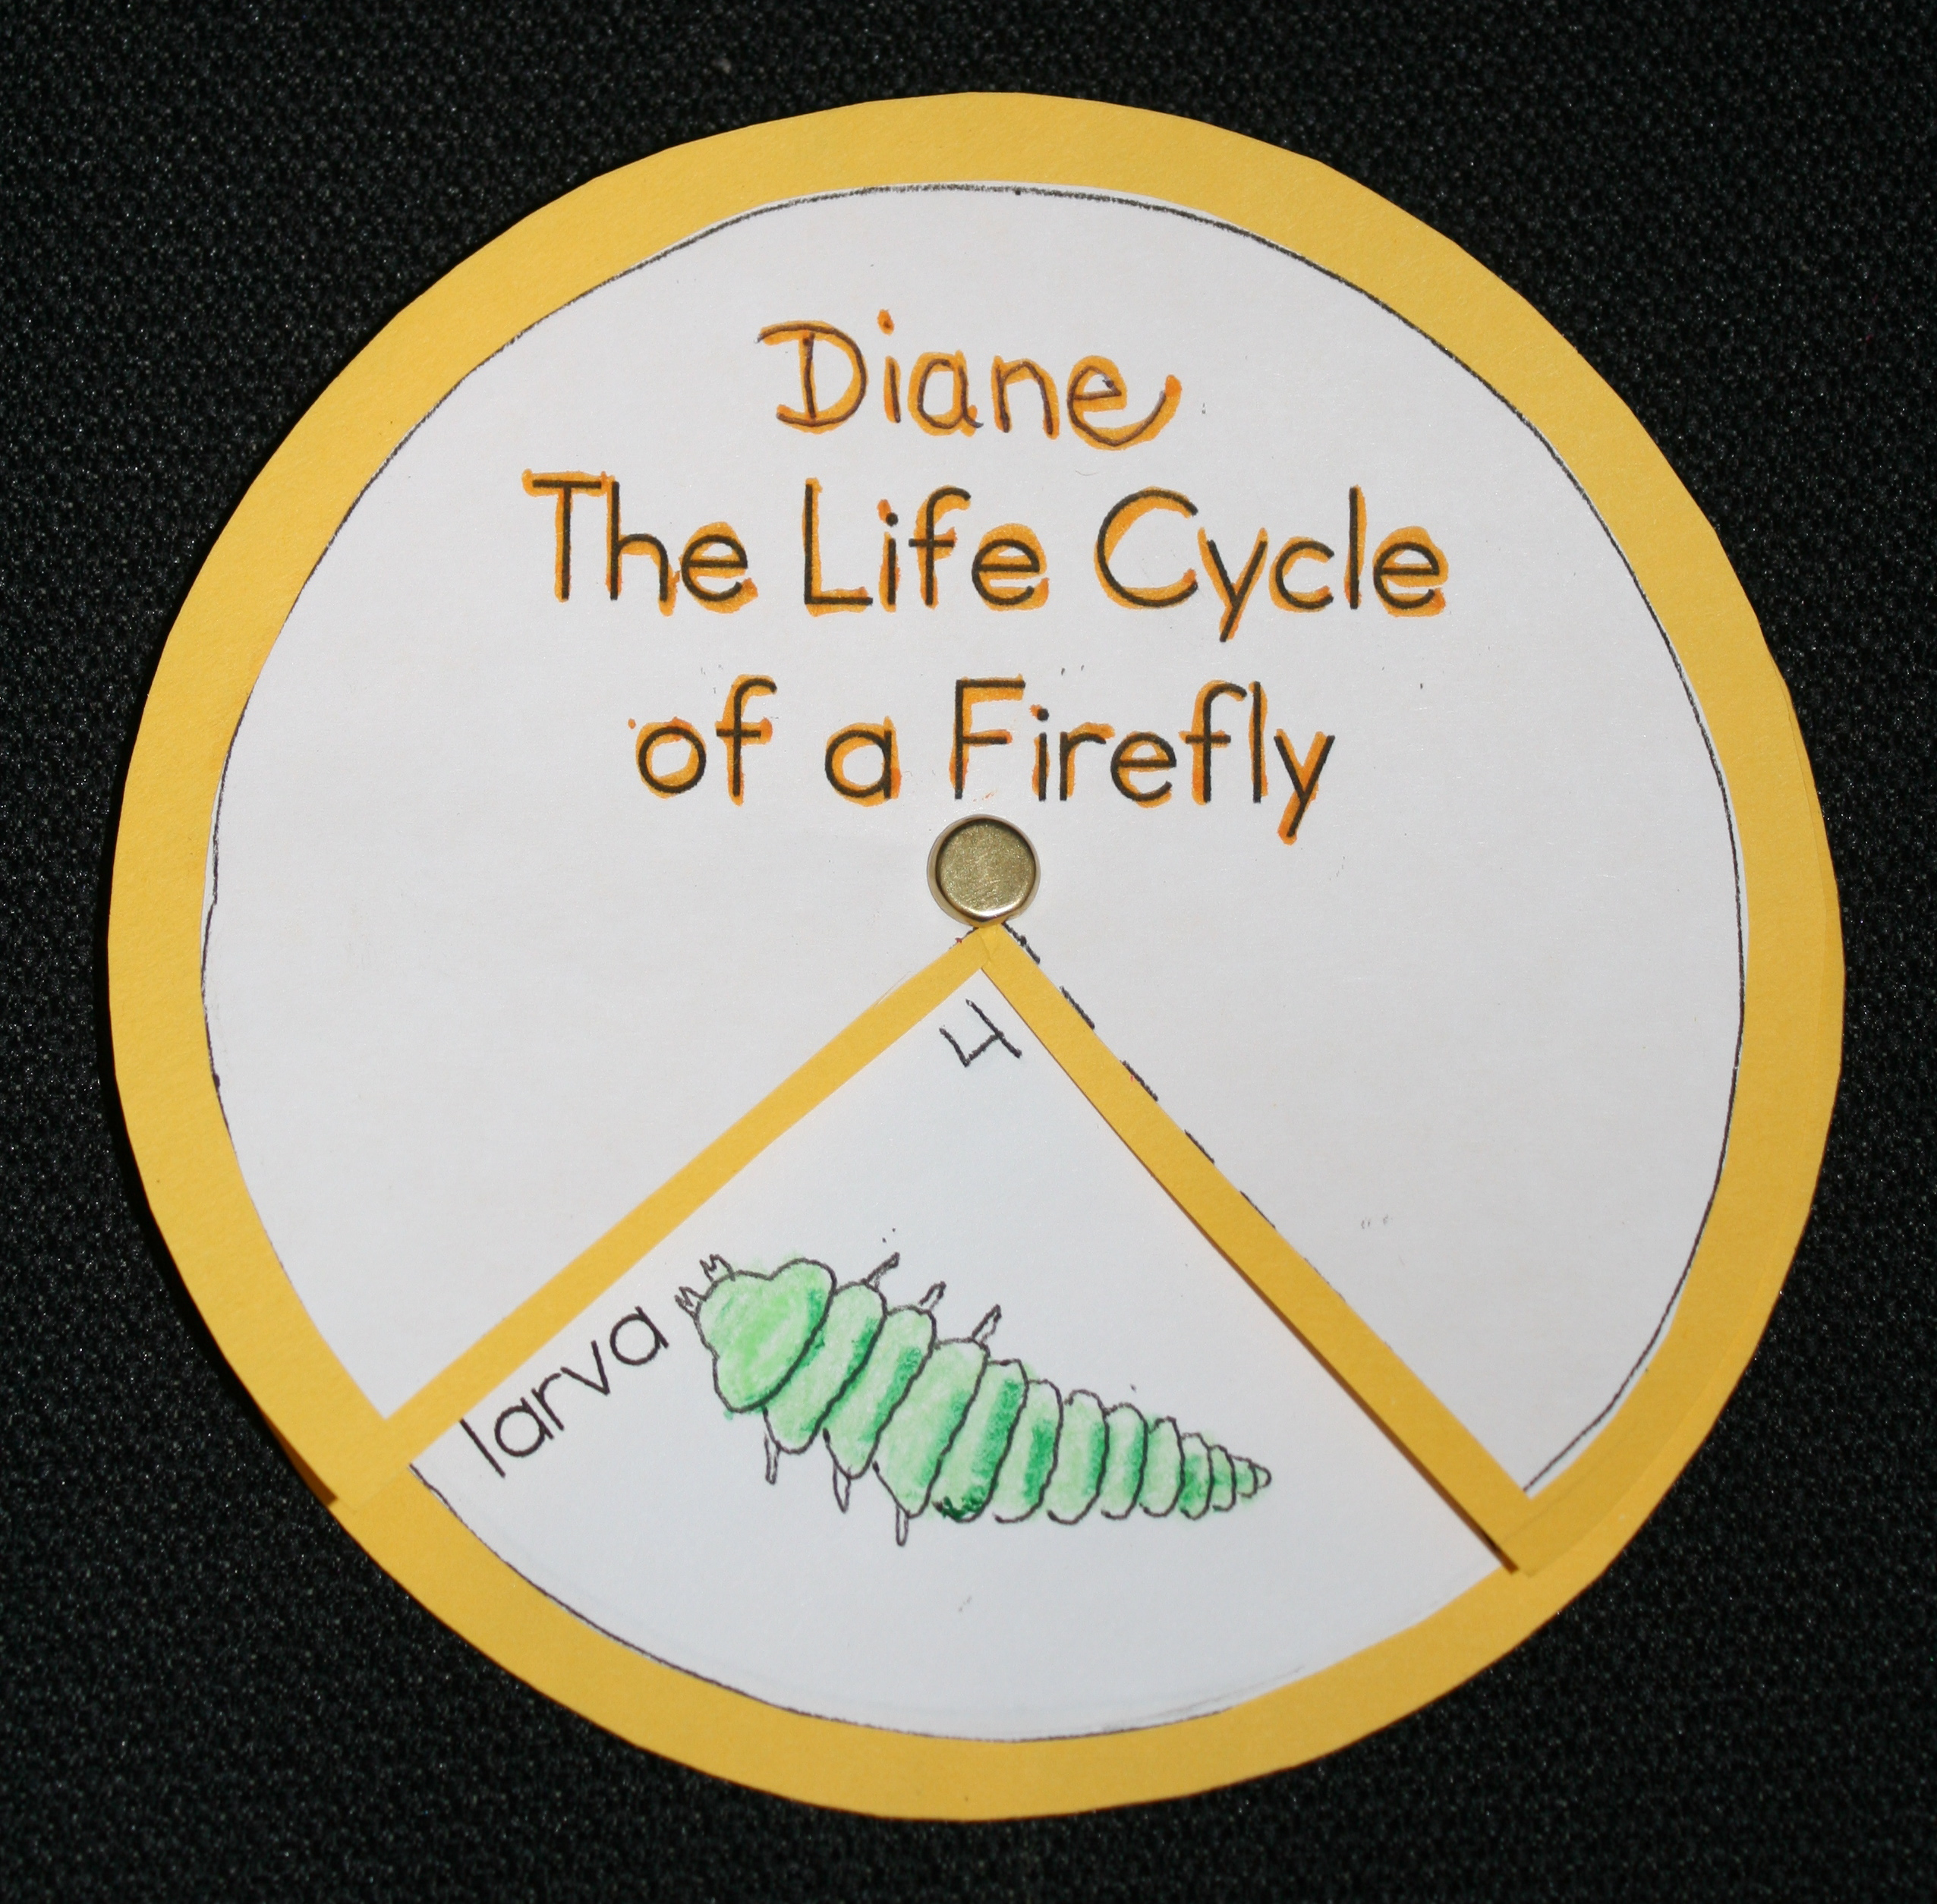 life cycle of a firefly, firefly life cycle wheel, firefly art project, firefly science activity, firefly activities, firefly lessons, firefly bulletin board, life cycle of a firefly, science ideas for early elementary, insect ideas, science centers, firefly booklet, firefly crafts, firefly art project, firefly centers, firefly activities,